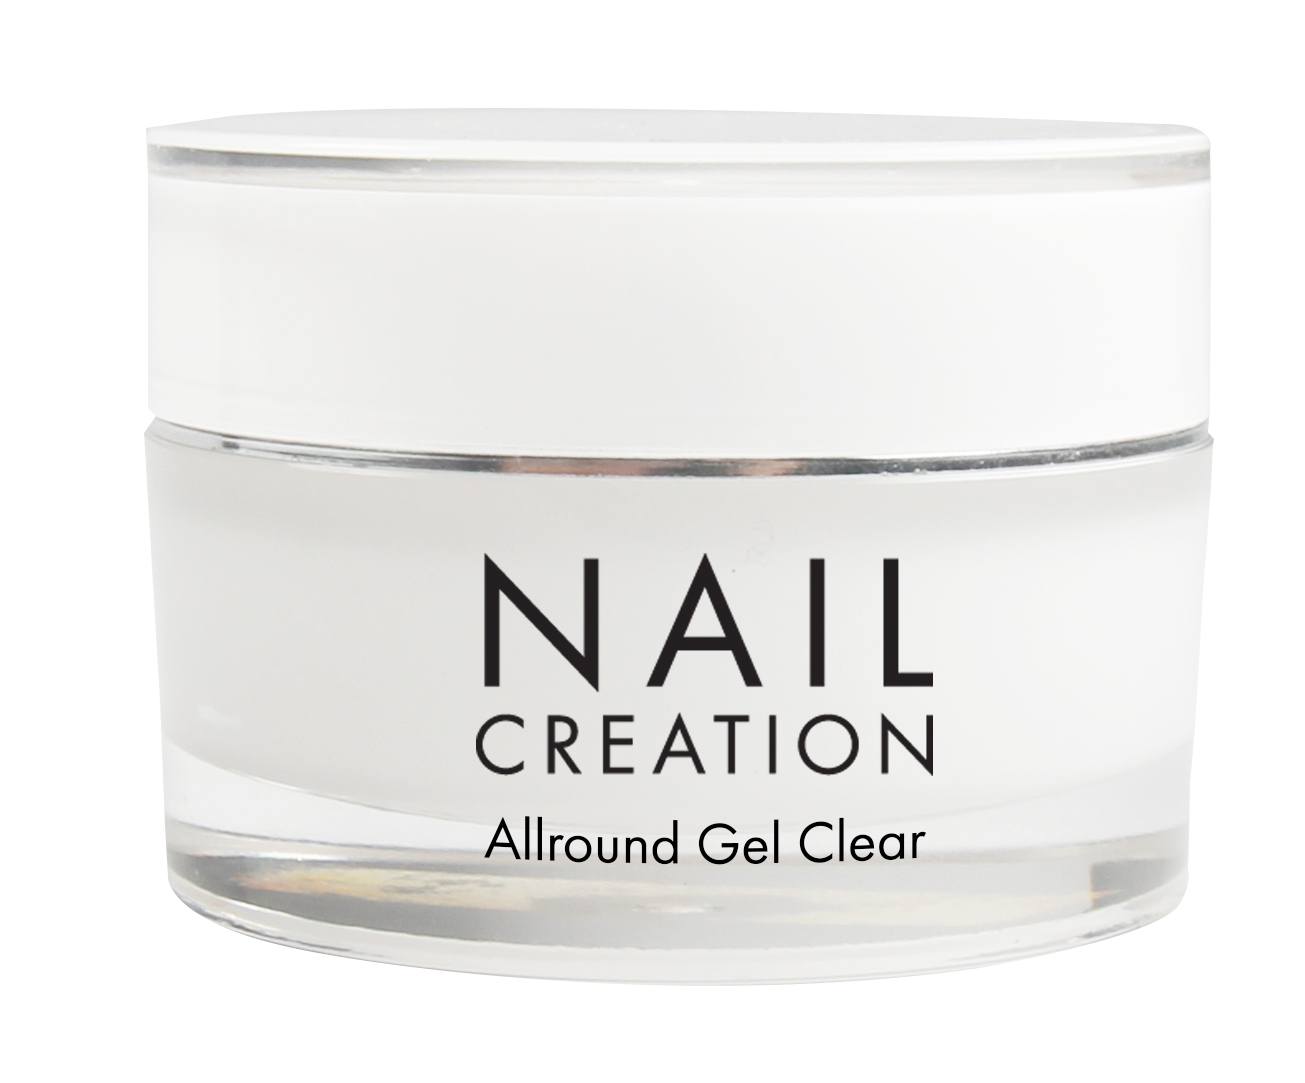 Afbeelding van Nail Creation Allround Gel - Clear